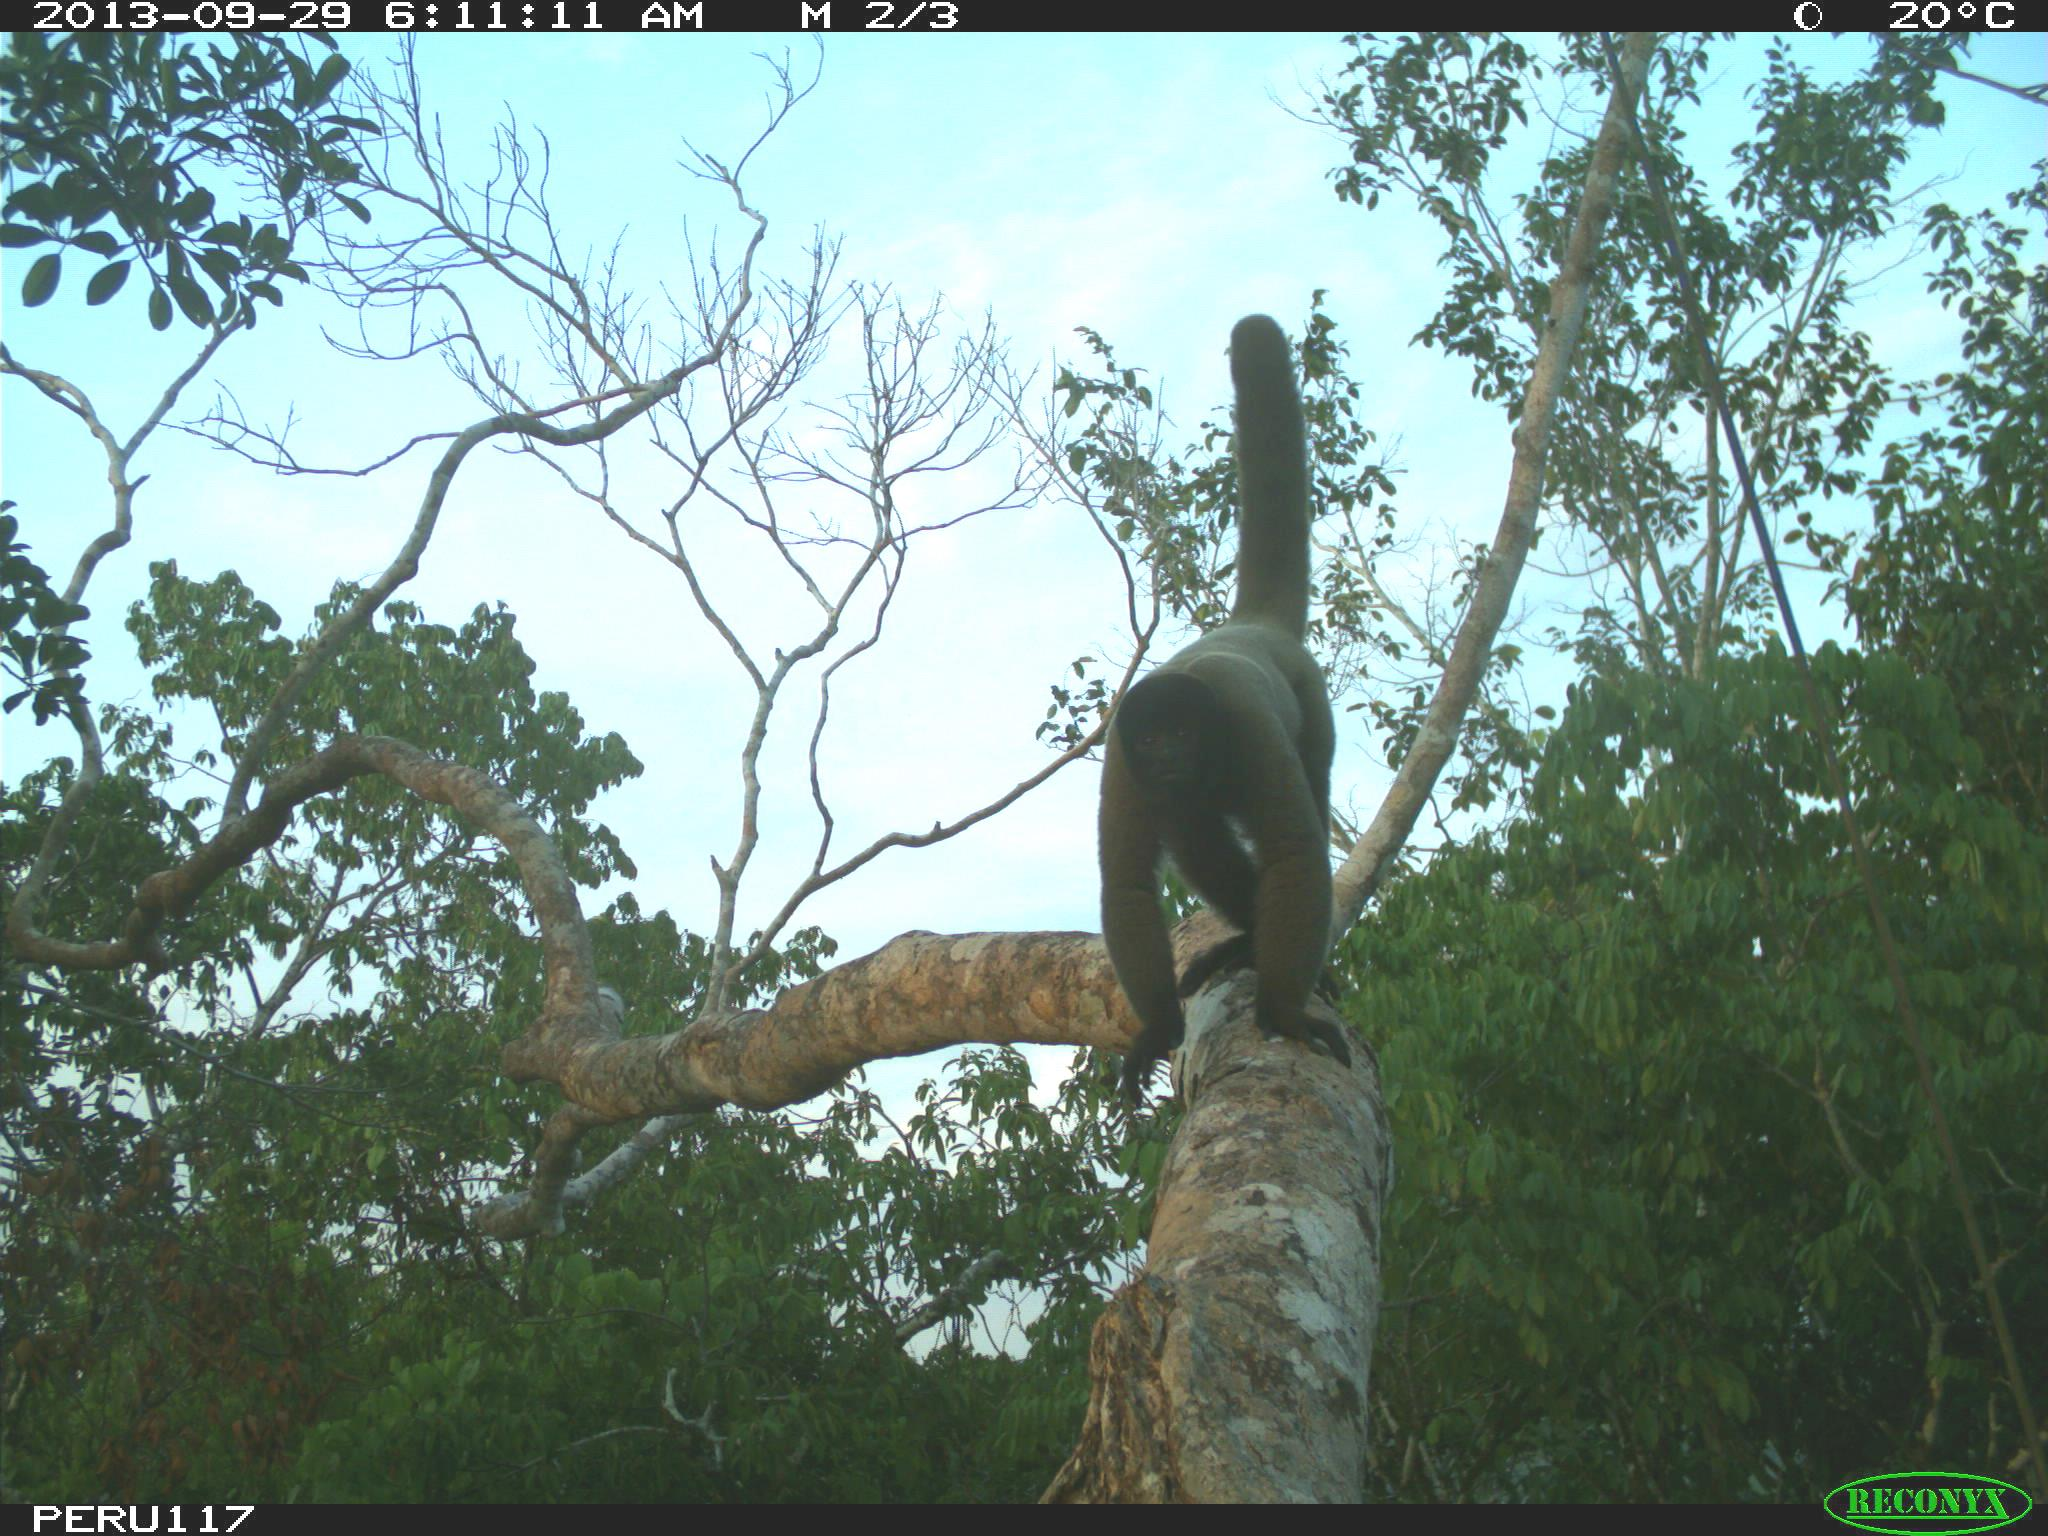 Woolly monkey climbing on a branch in the tree canopy